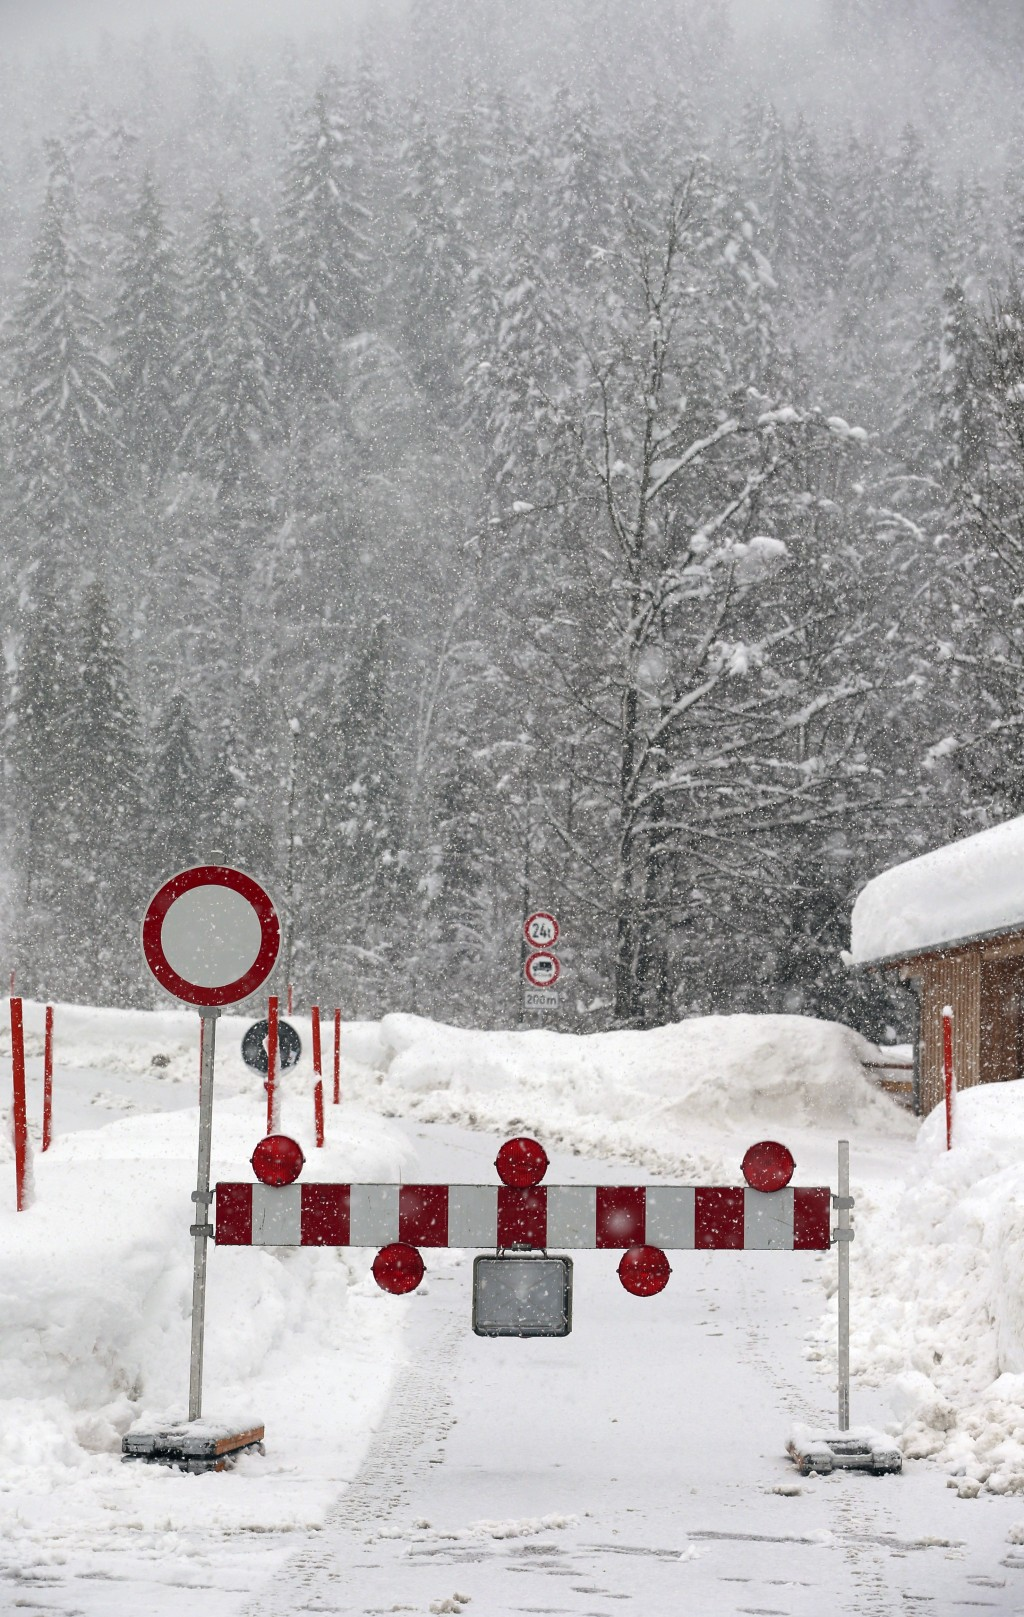 Due to the danger of an avalanche a mountain pass road is closed in Obermaiselstein, Germany, Sunday, Jan. 13, 2019. (Karl-Josef Hildenbrand/dpa via A